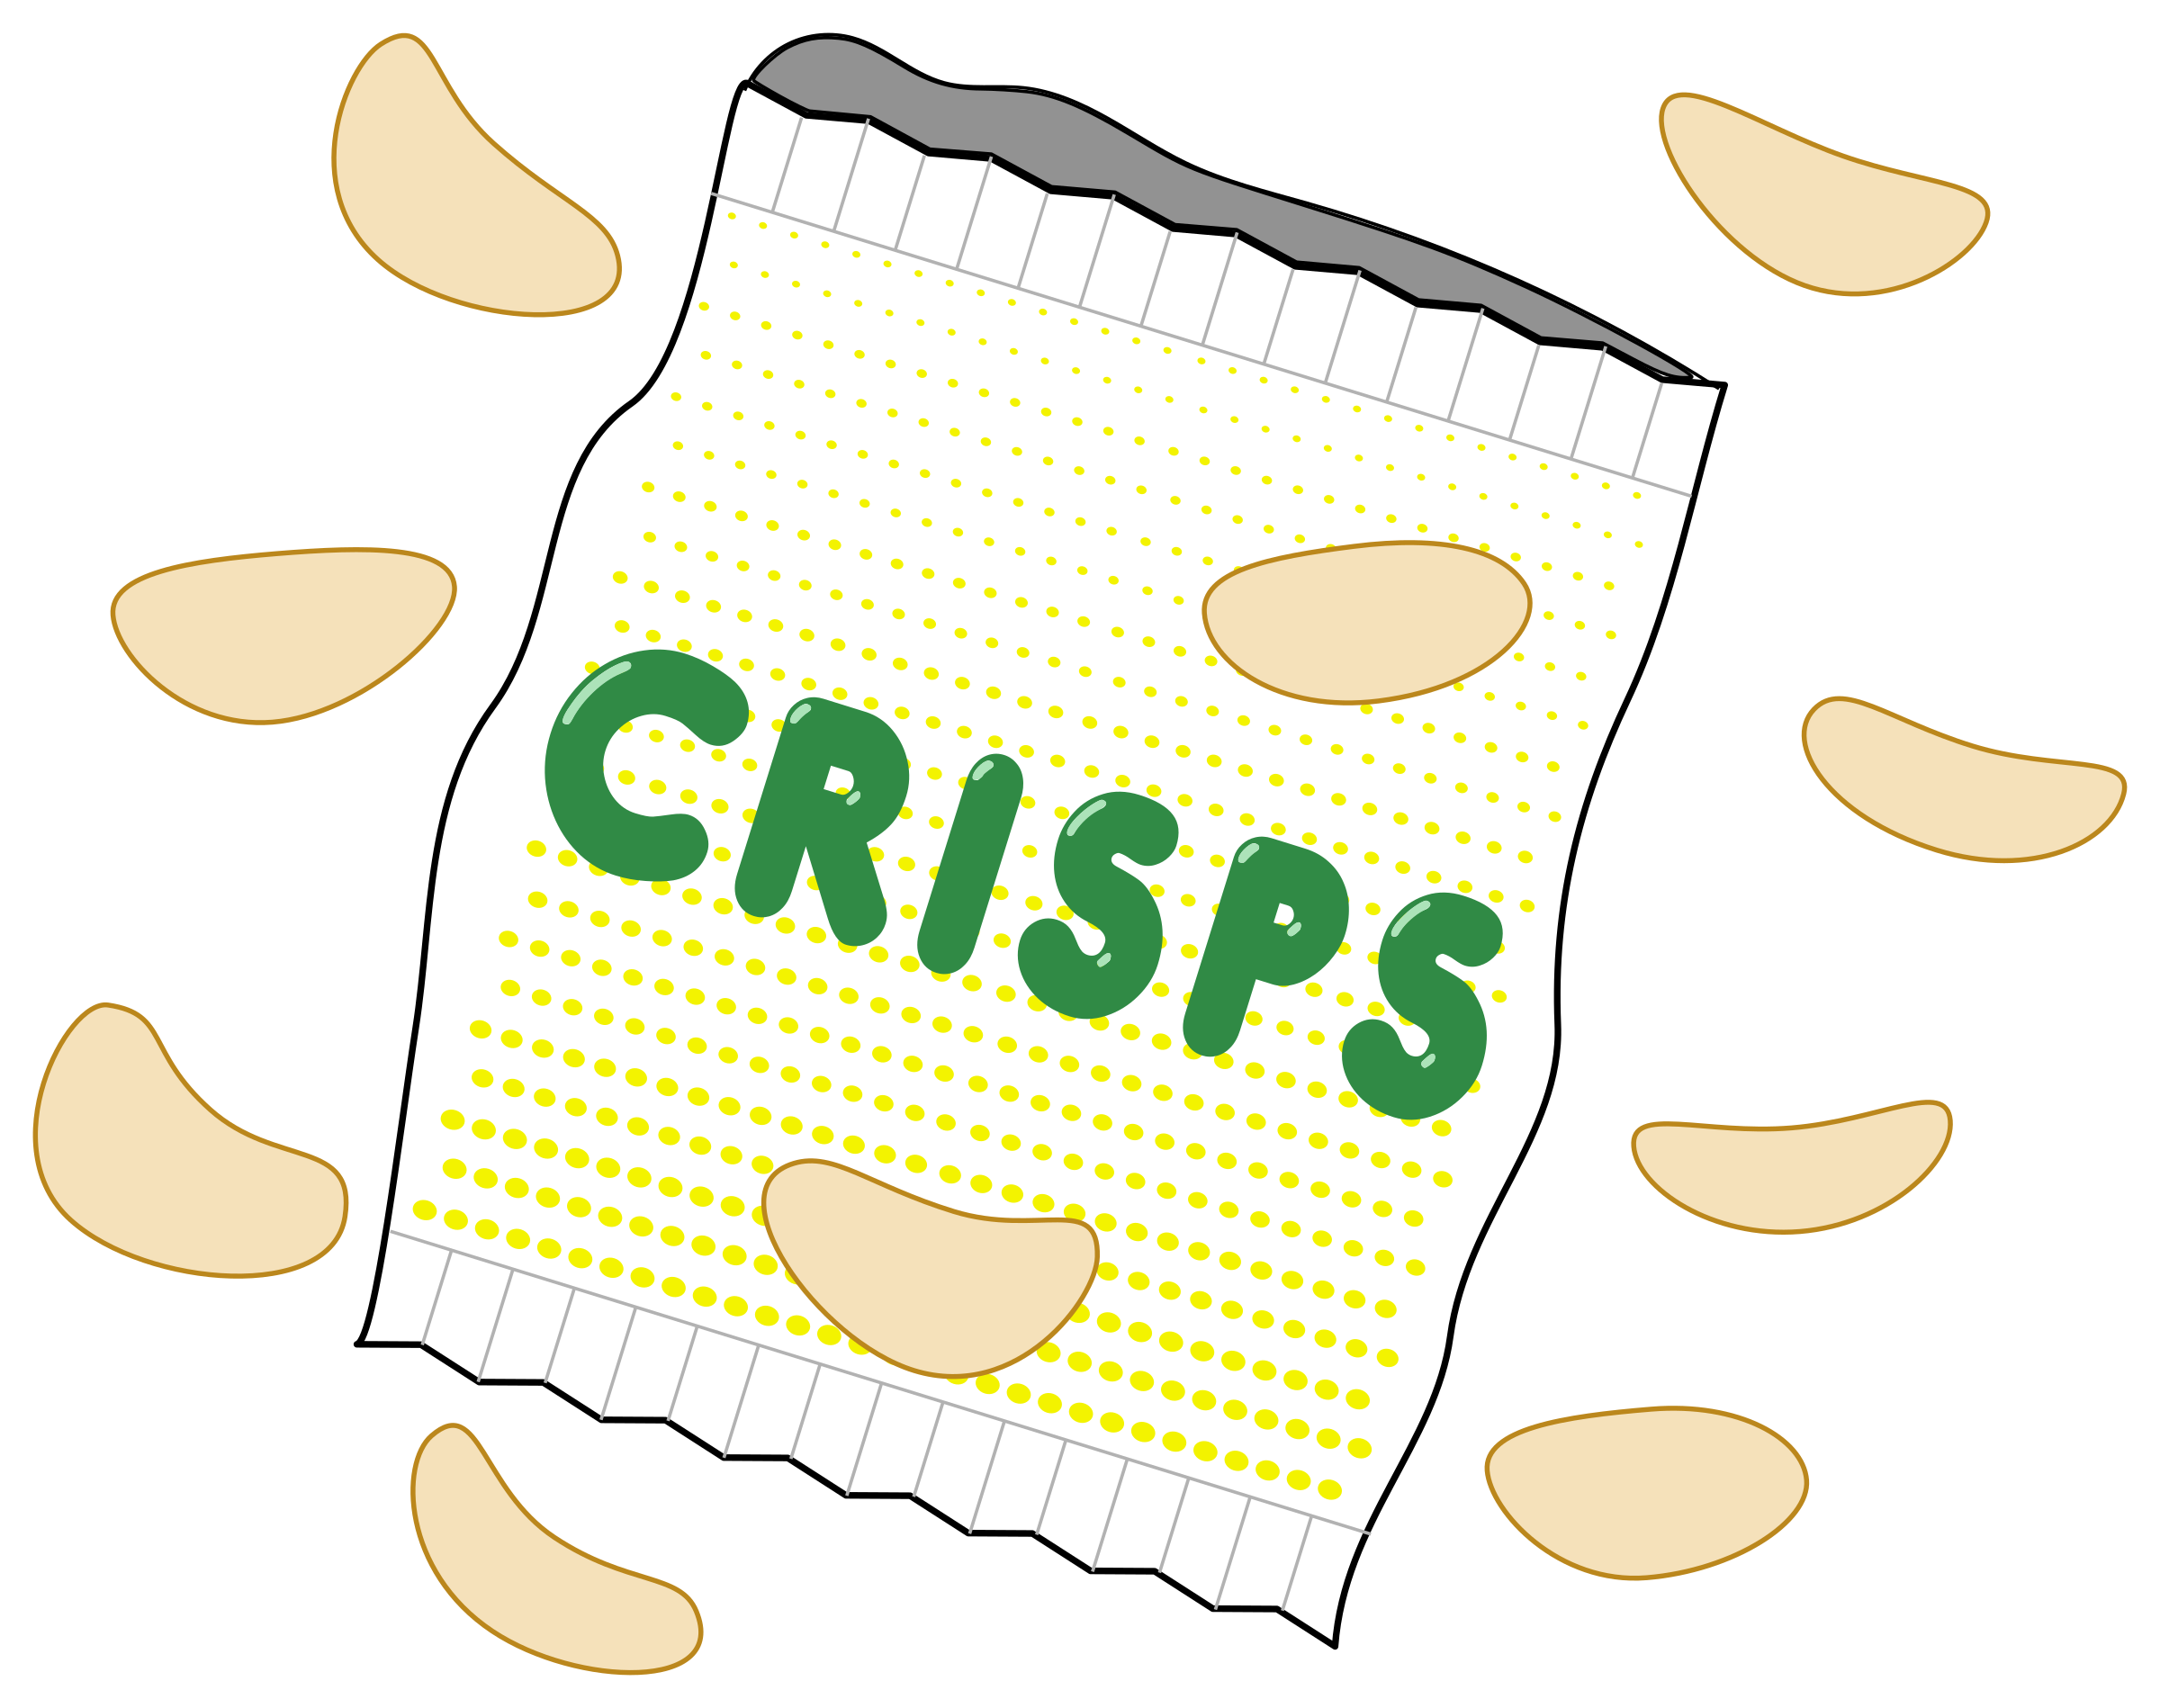 Crib clipart crip, Crib crip Transparent FREE for download.